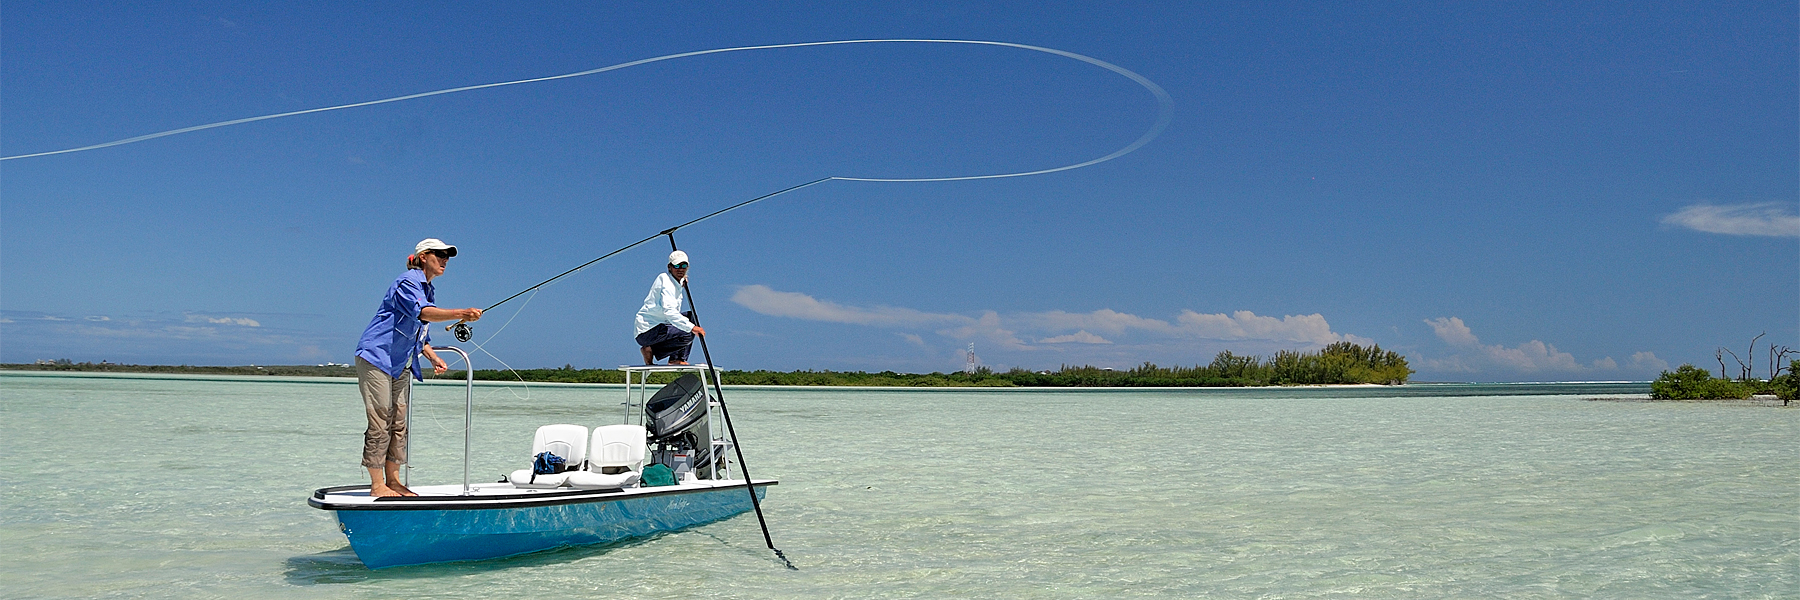 Fly fishing bahamas bahamas fly fishing lodges for Fly fishing bahamas